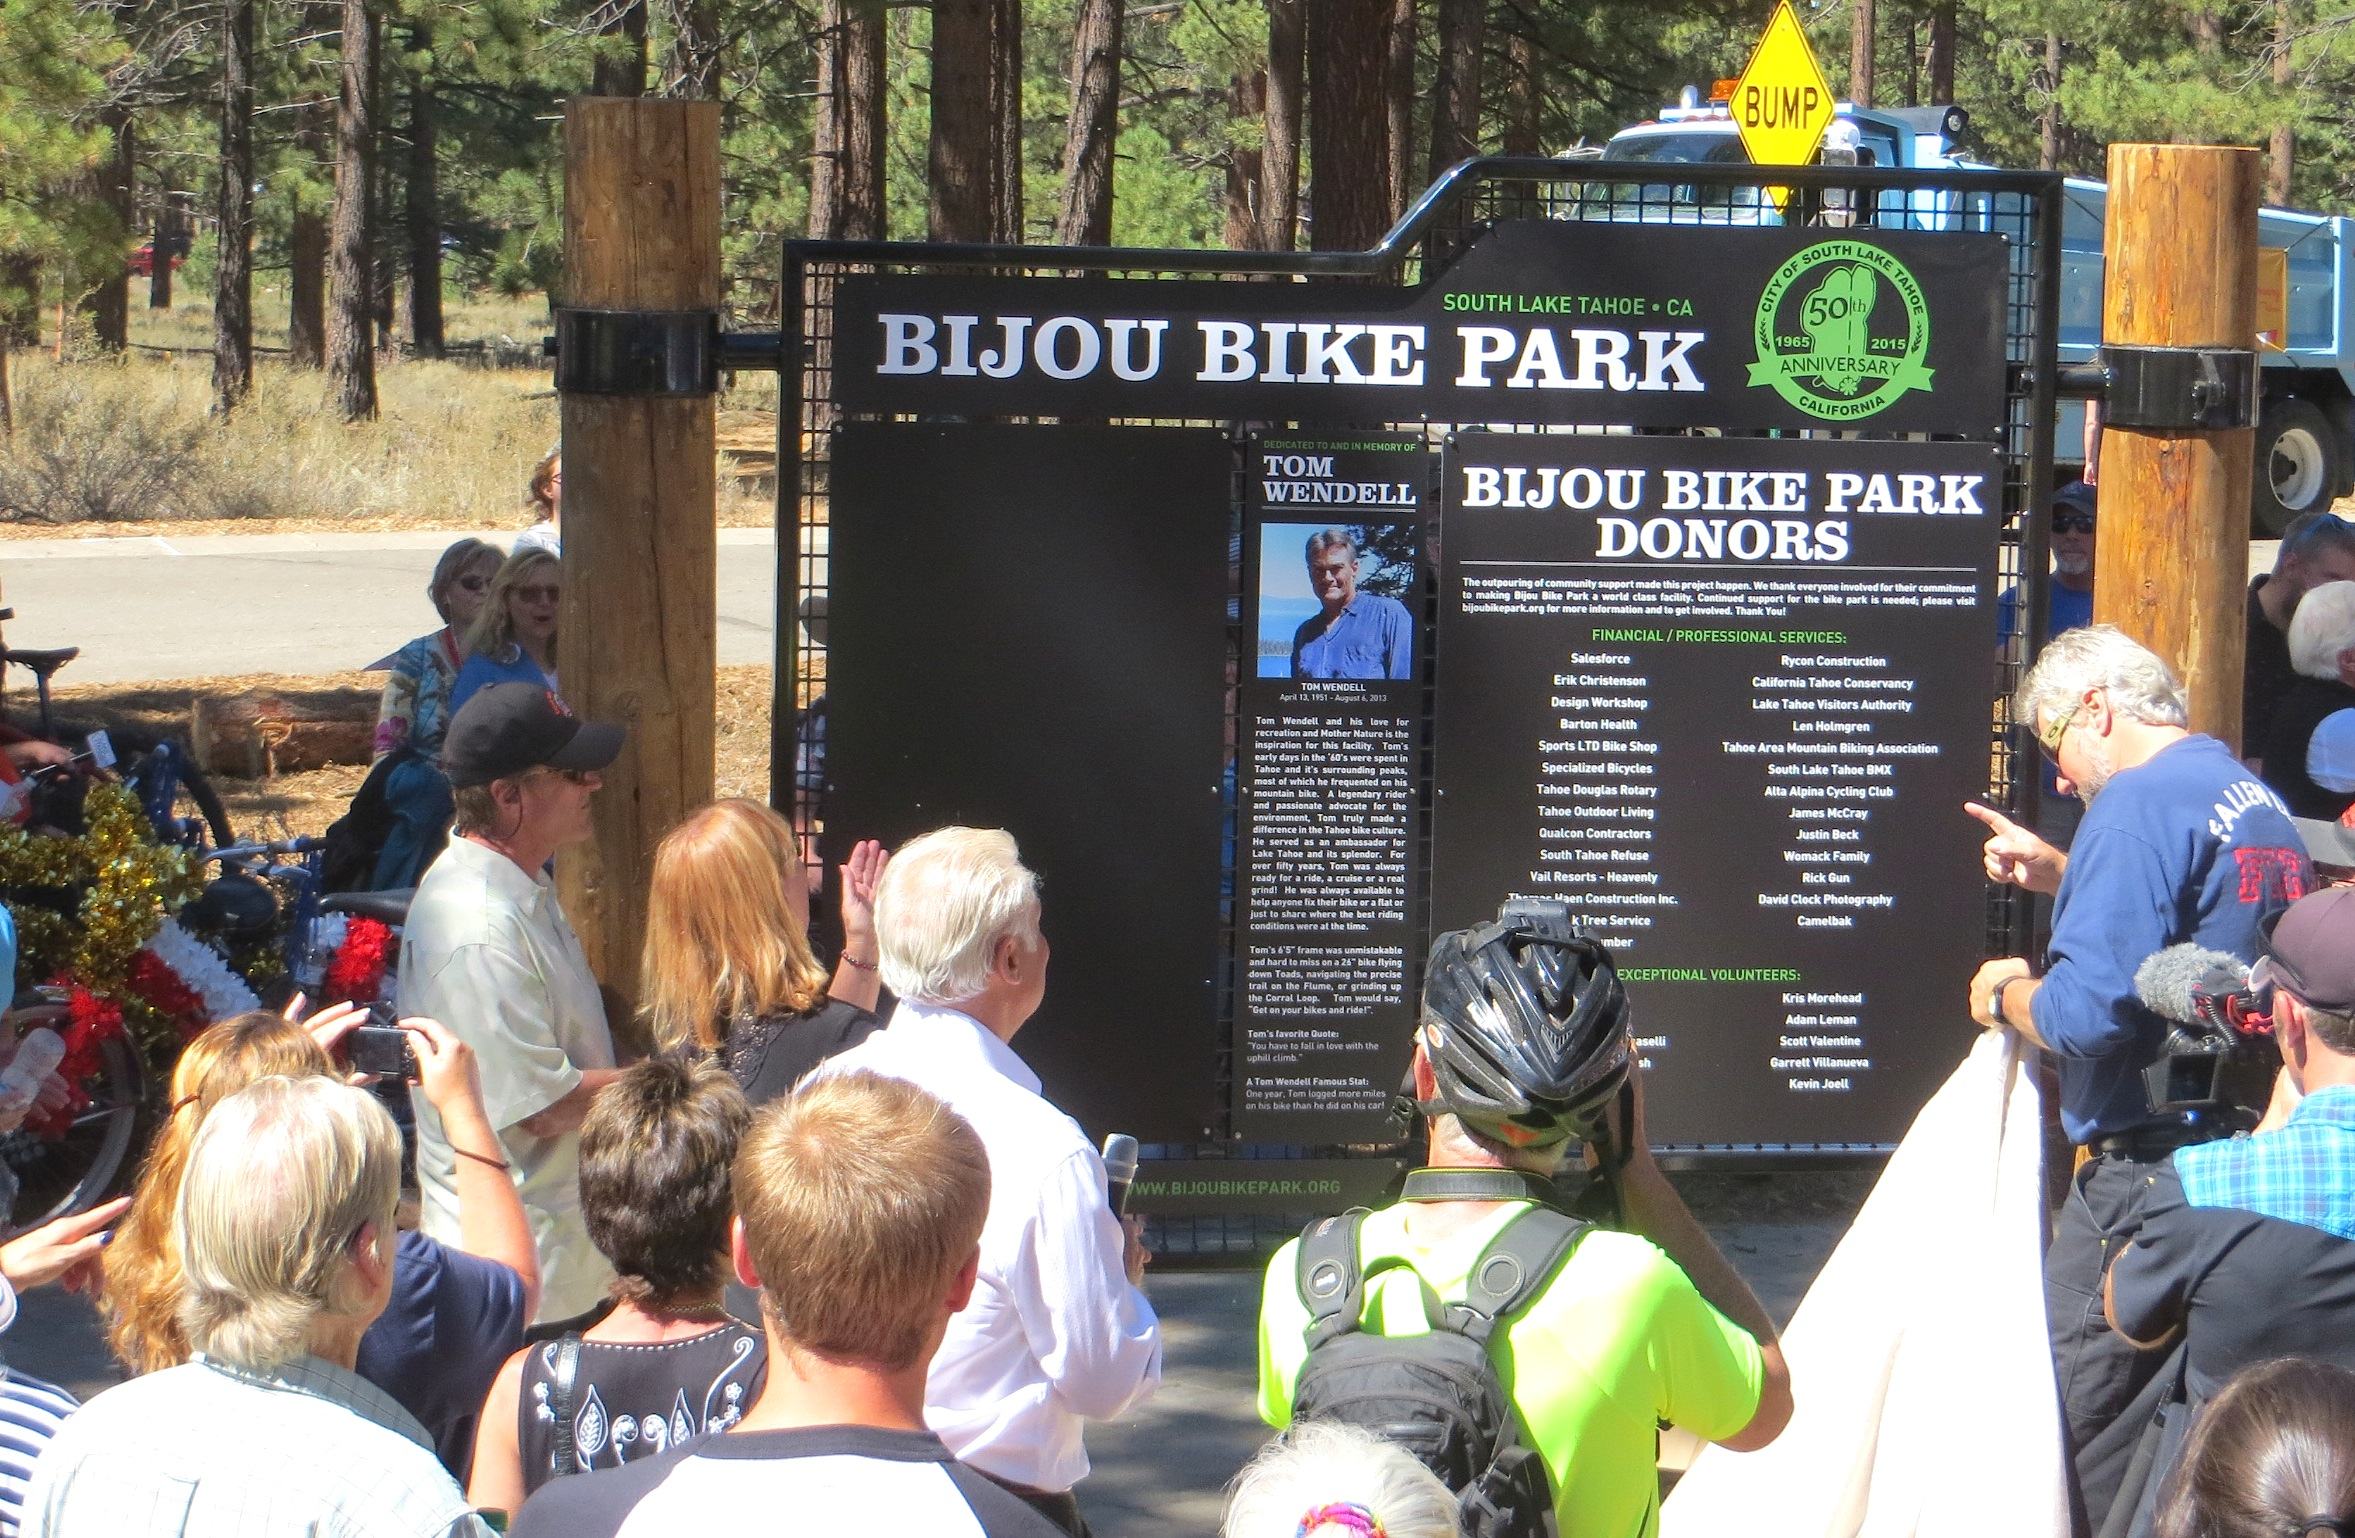 Bijou Bike Park dedication sign